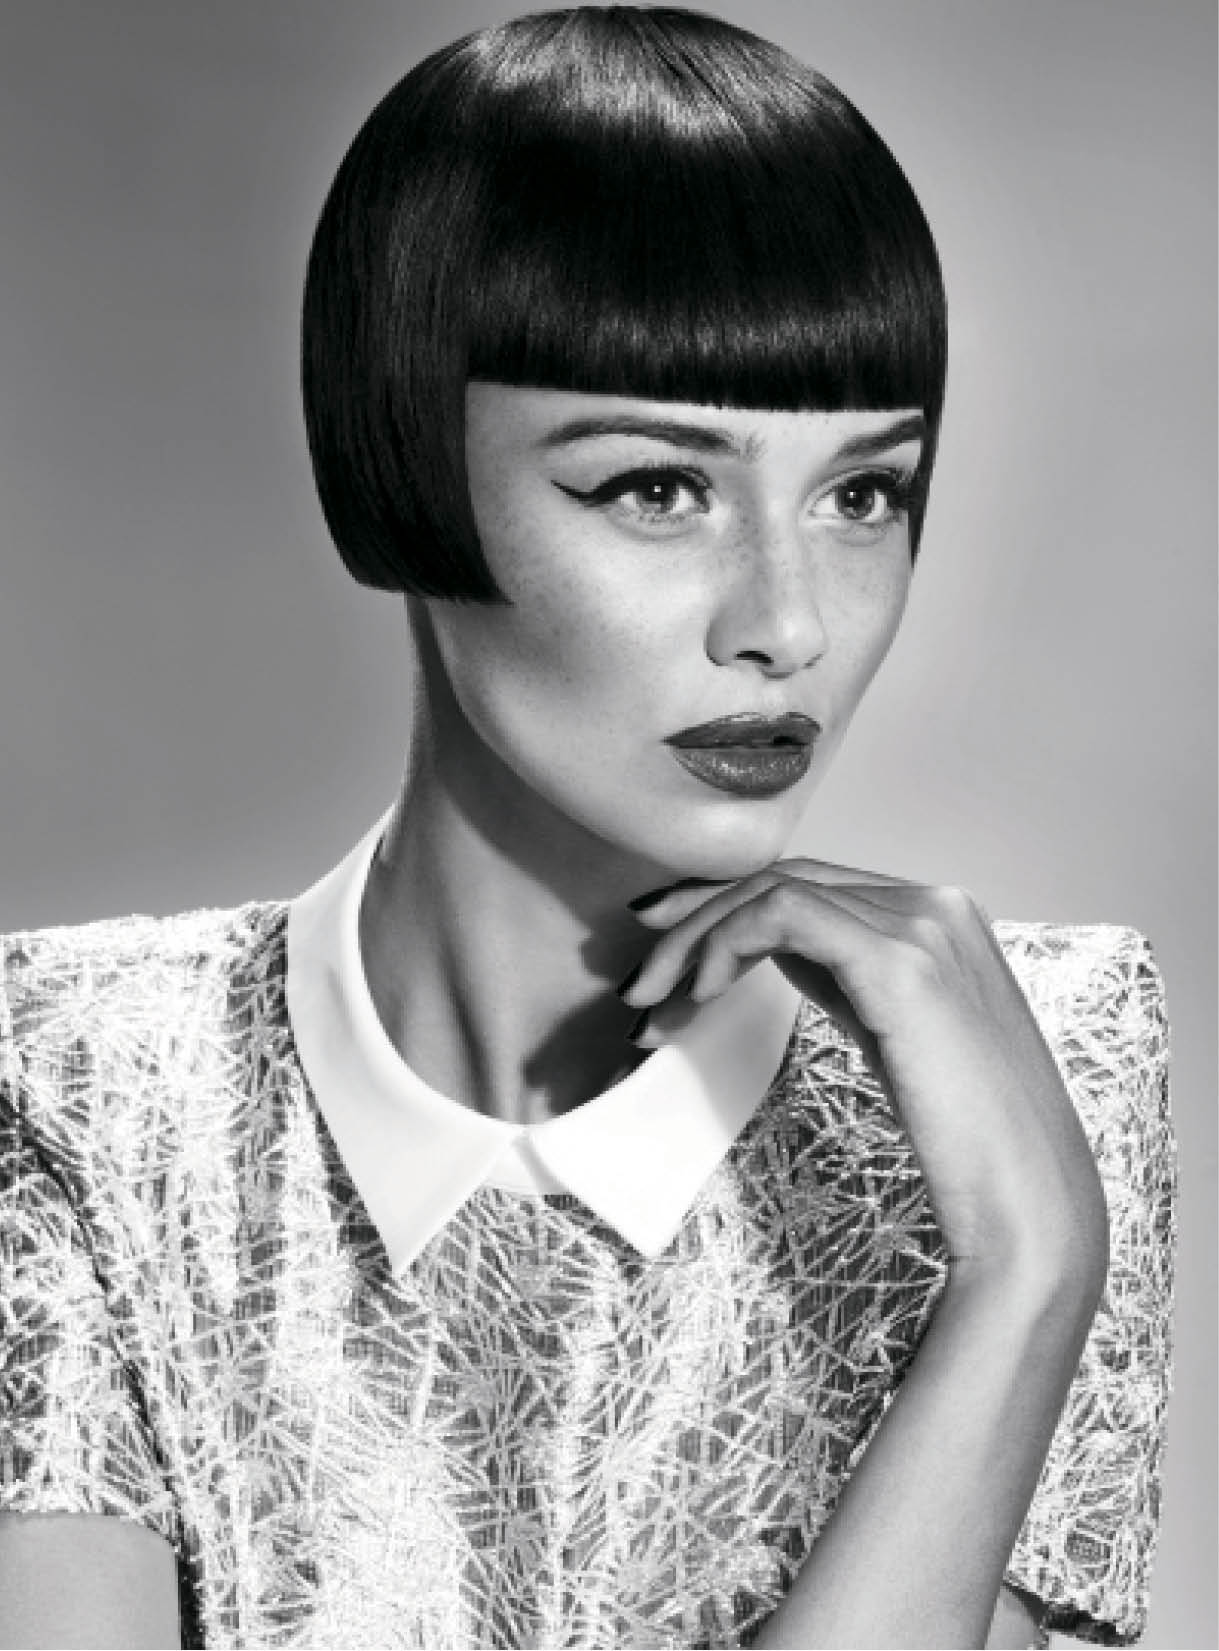 This ear-length bob with a short fringe emphasizes the retro look of the 1950s, Mather says. To style, she blow-dried hair smooth for a sleek finish.